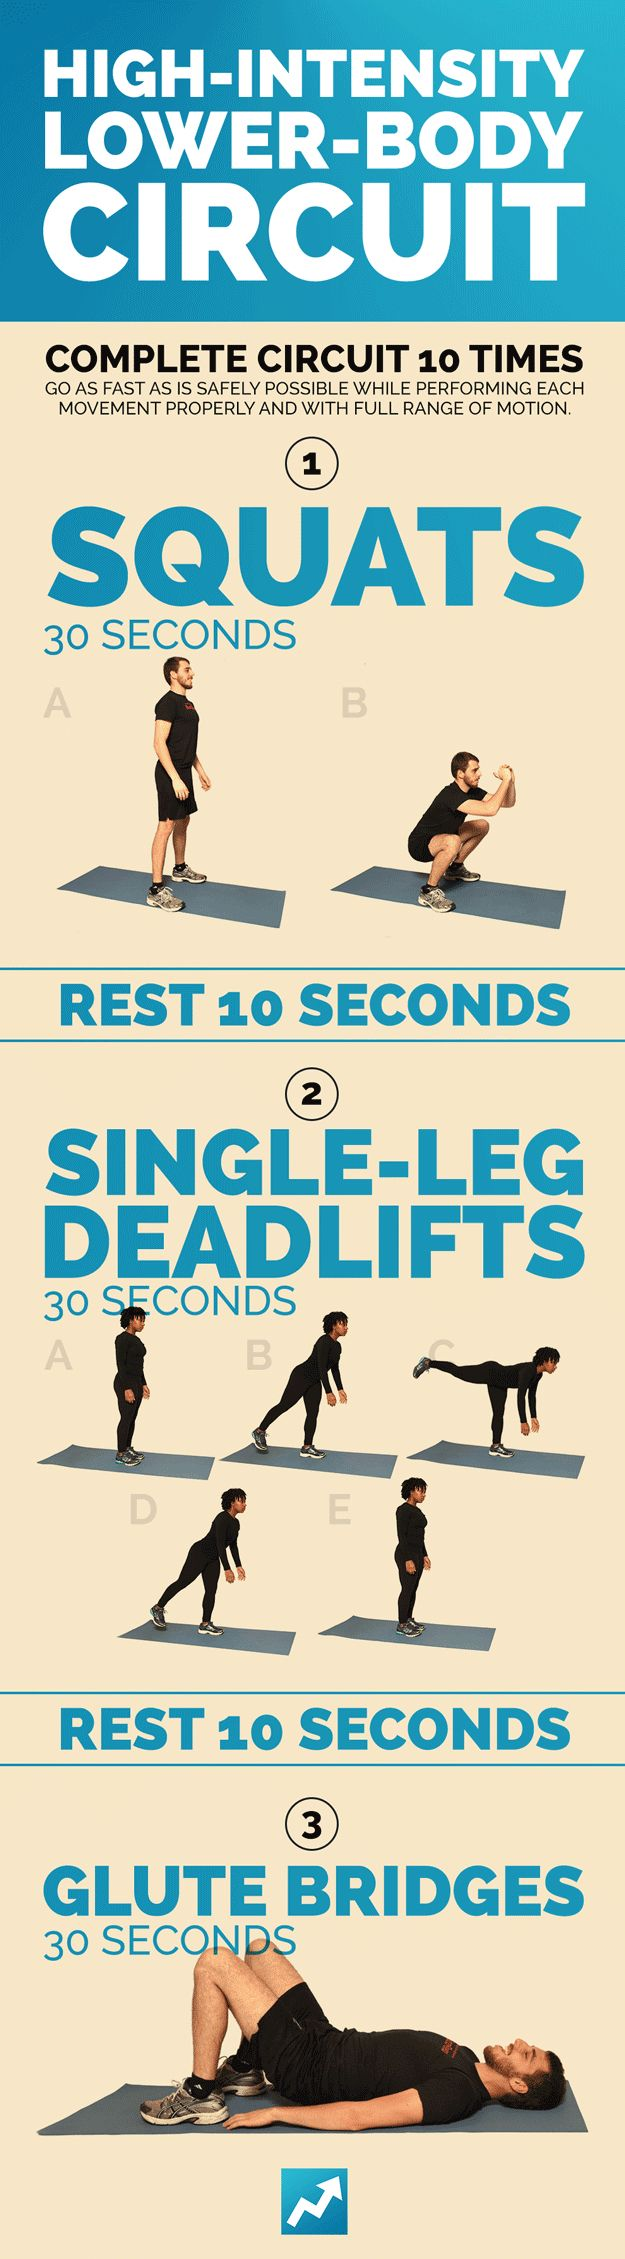 High Intensity Lower Body Circuit | Posted By: NewHowtoLoseBellyFat.com